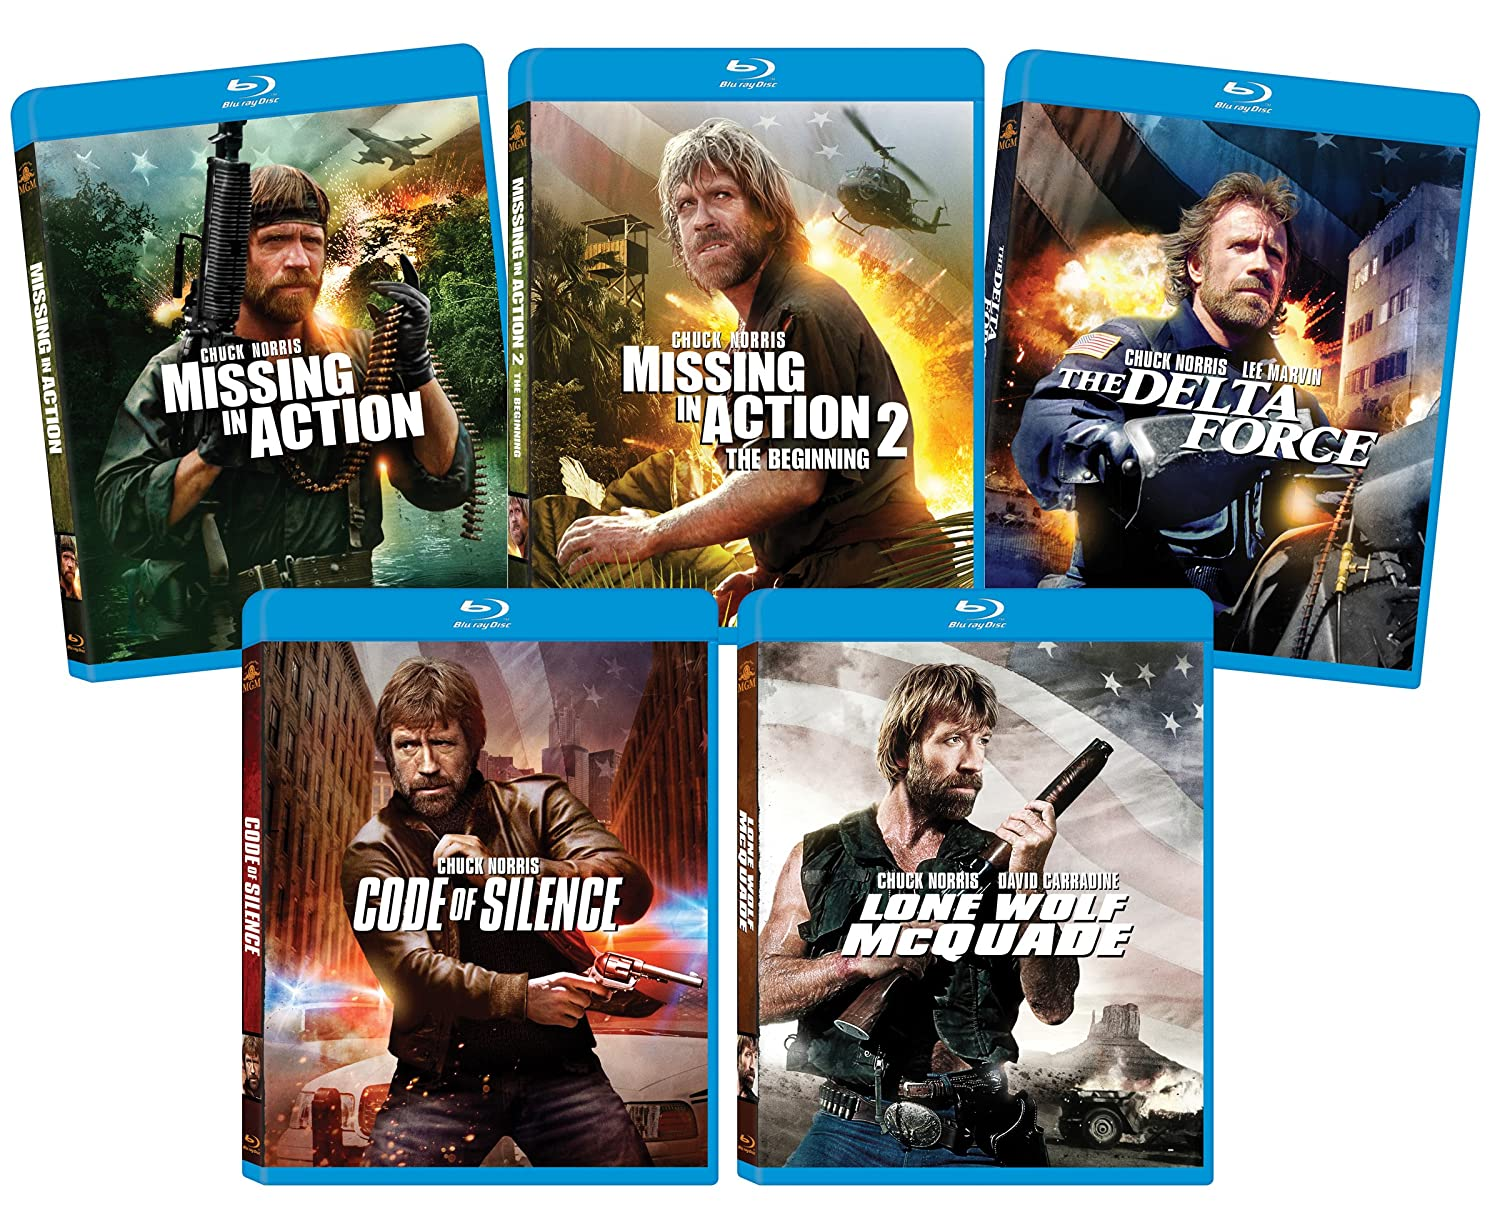 The Ultimate Chuck Norris Blu-ray Bundle (64% off)